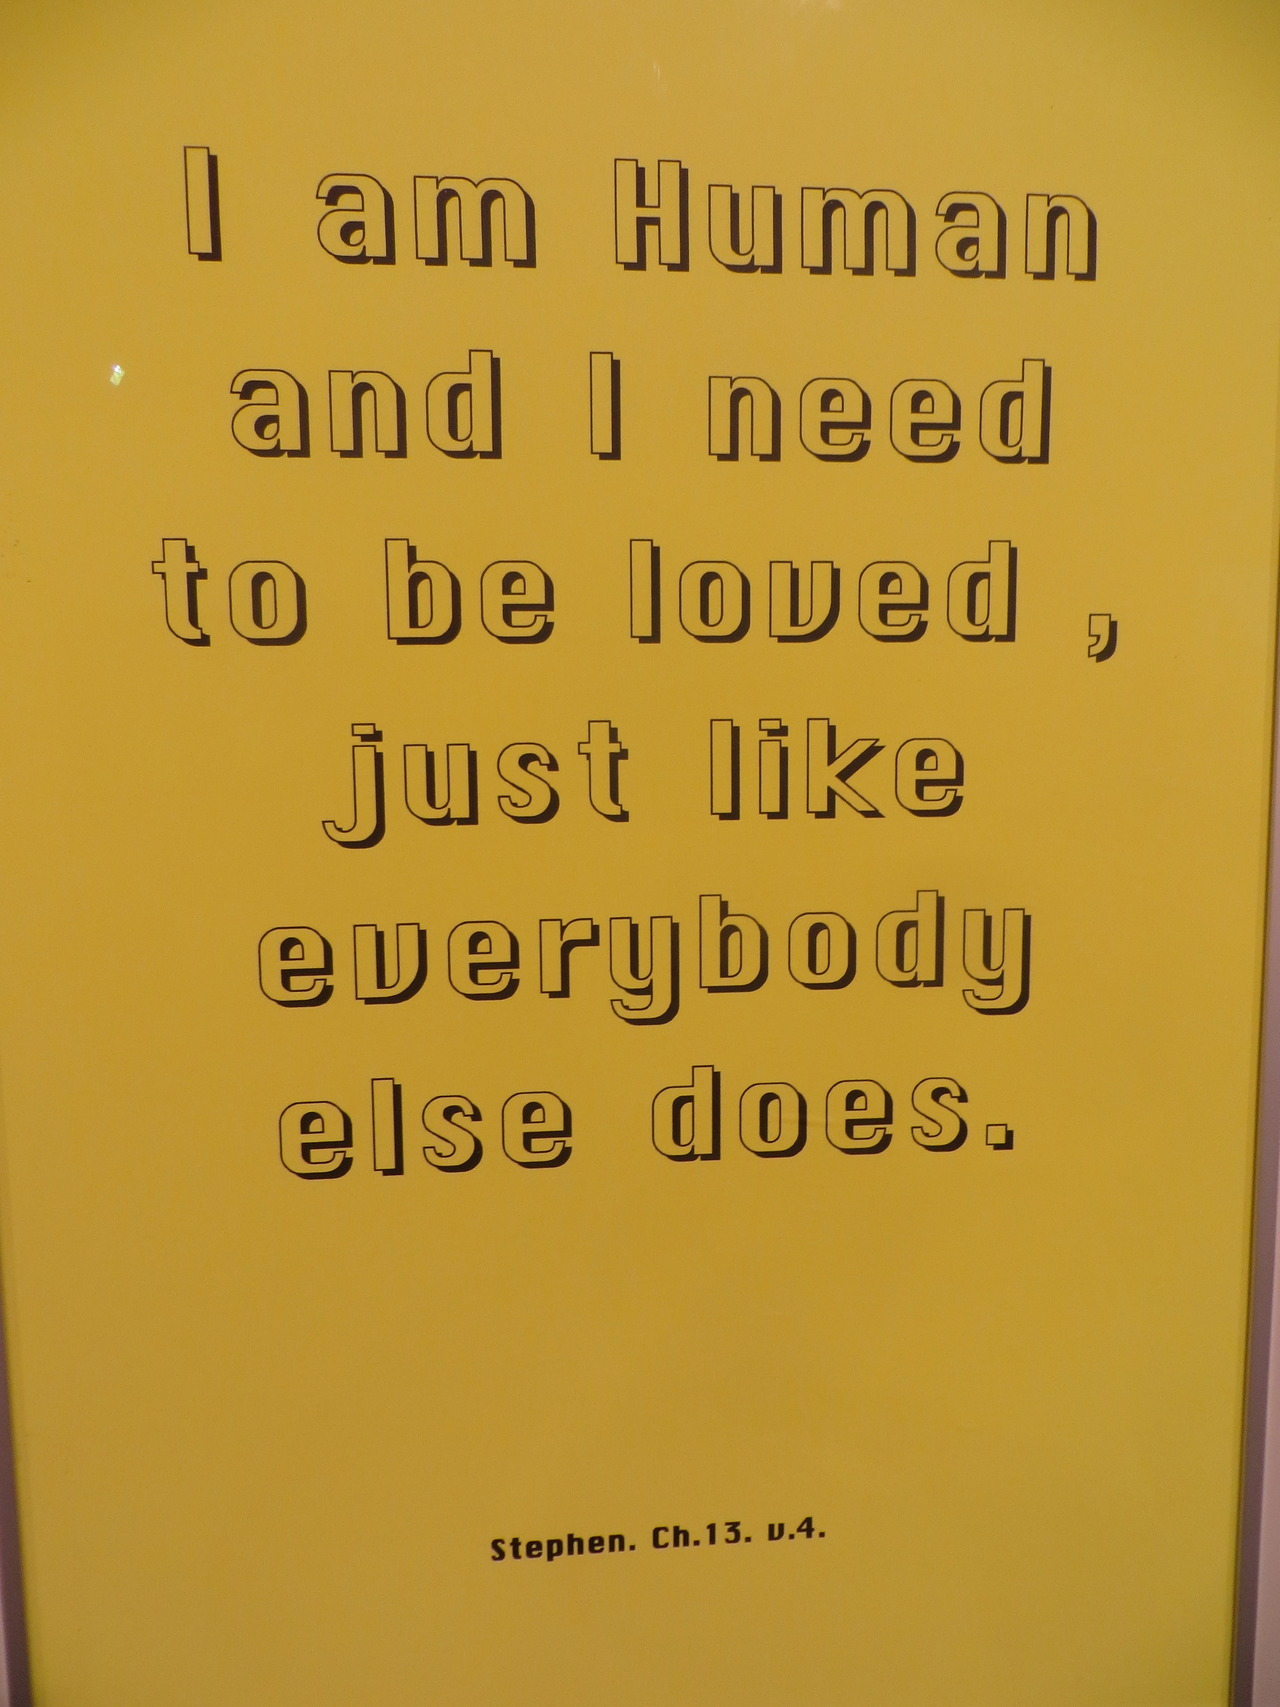 poplipps:  I am Human…  Human need to be loved